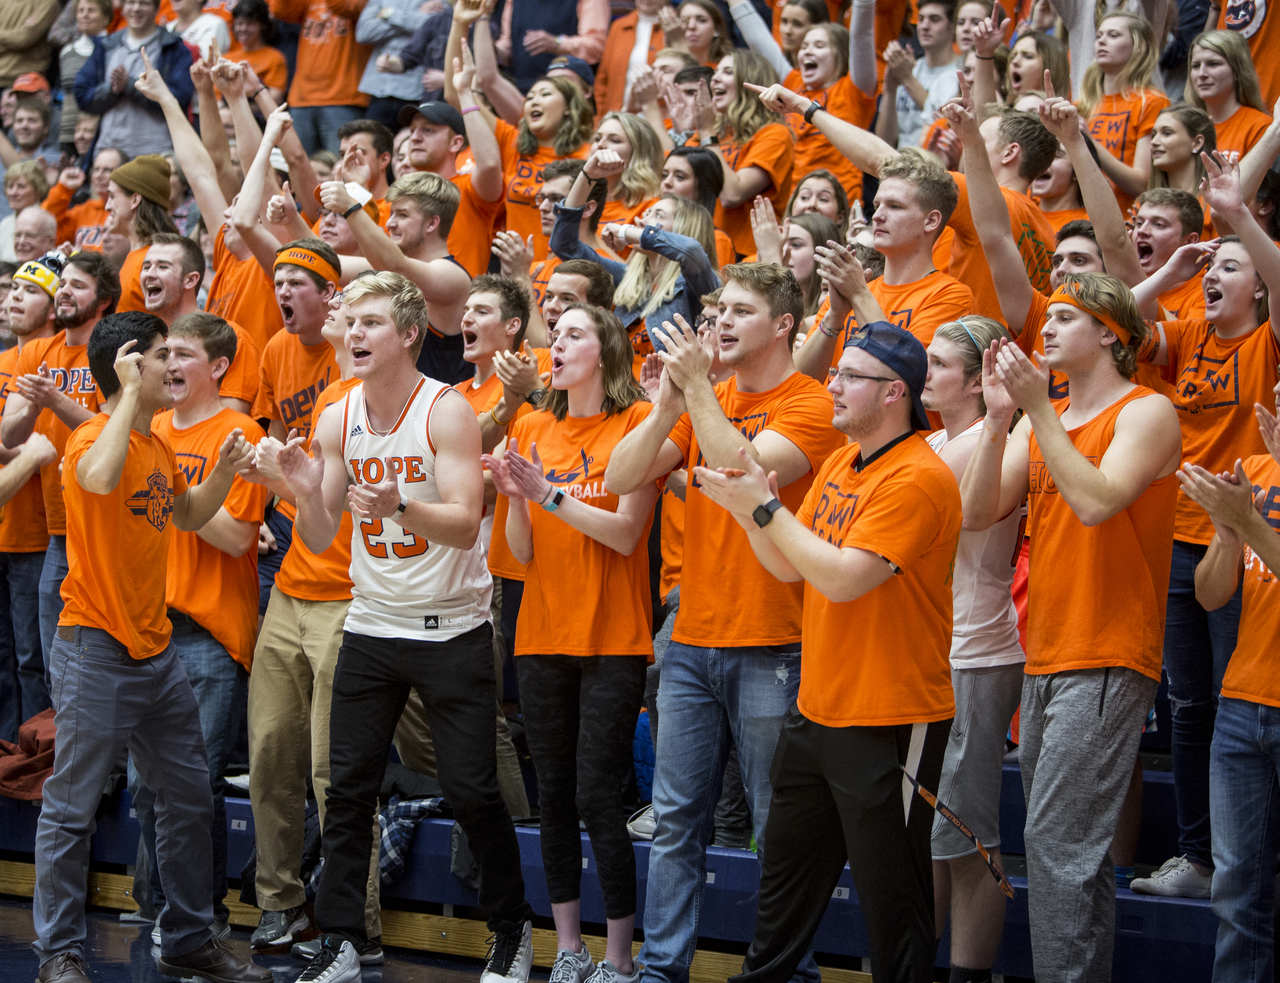 Orange-clad Hope College students lead cheers during a basketball game at DeVos Fieldhouse.